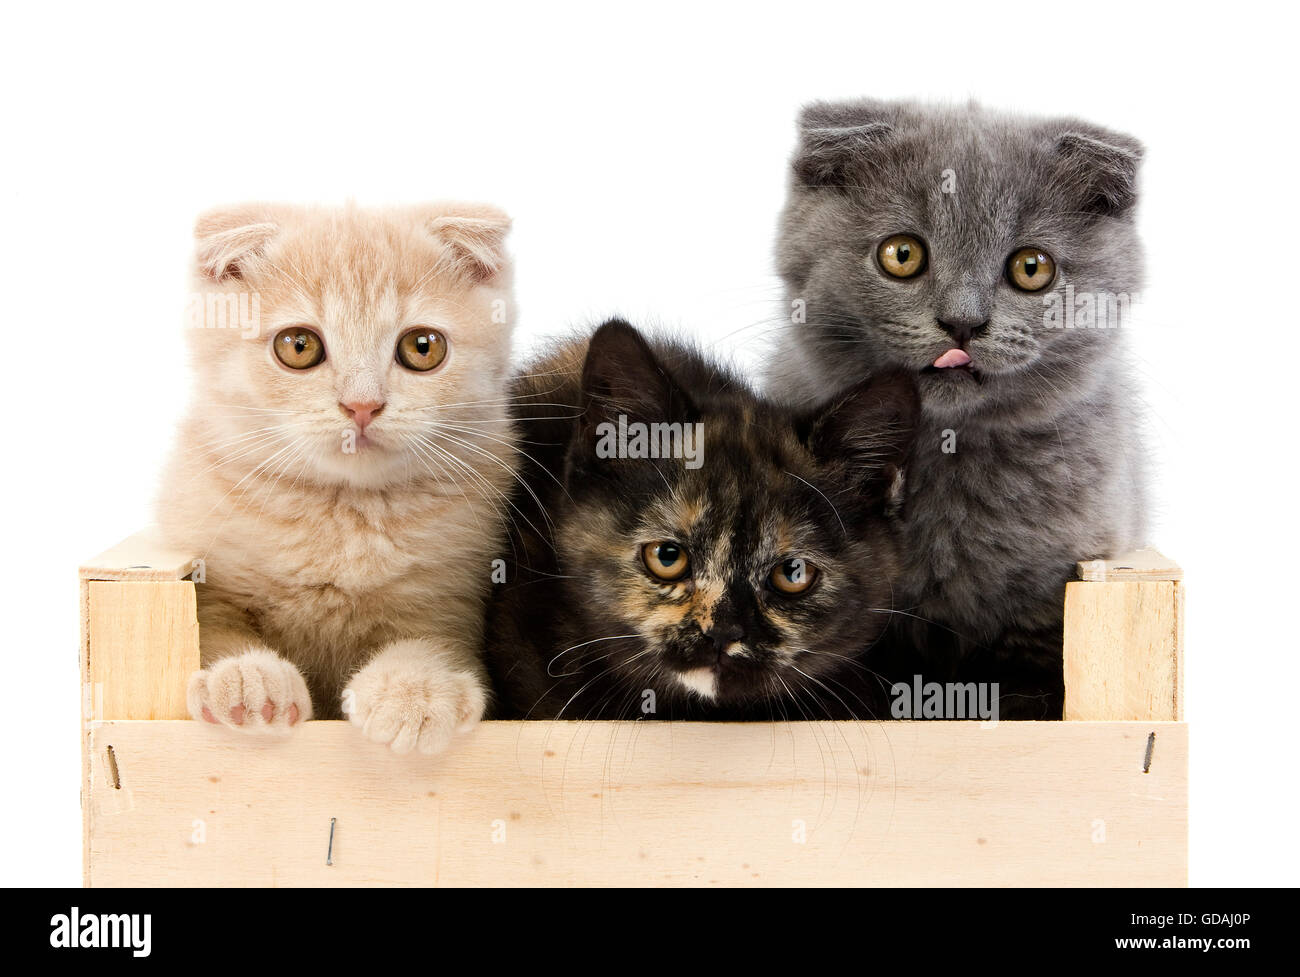 BLACK TORTOISE-SHELL BRITISH SHORTHAIR WITH BLUE AND CREAM SCOTTISH FOLD KITTENS (2 MONTHS OLD), PLAYING IN BASKET - Stock Image